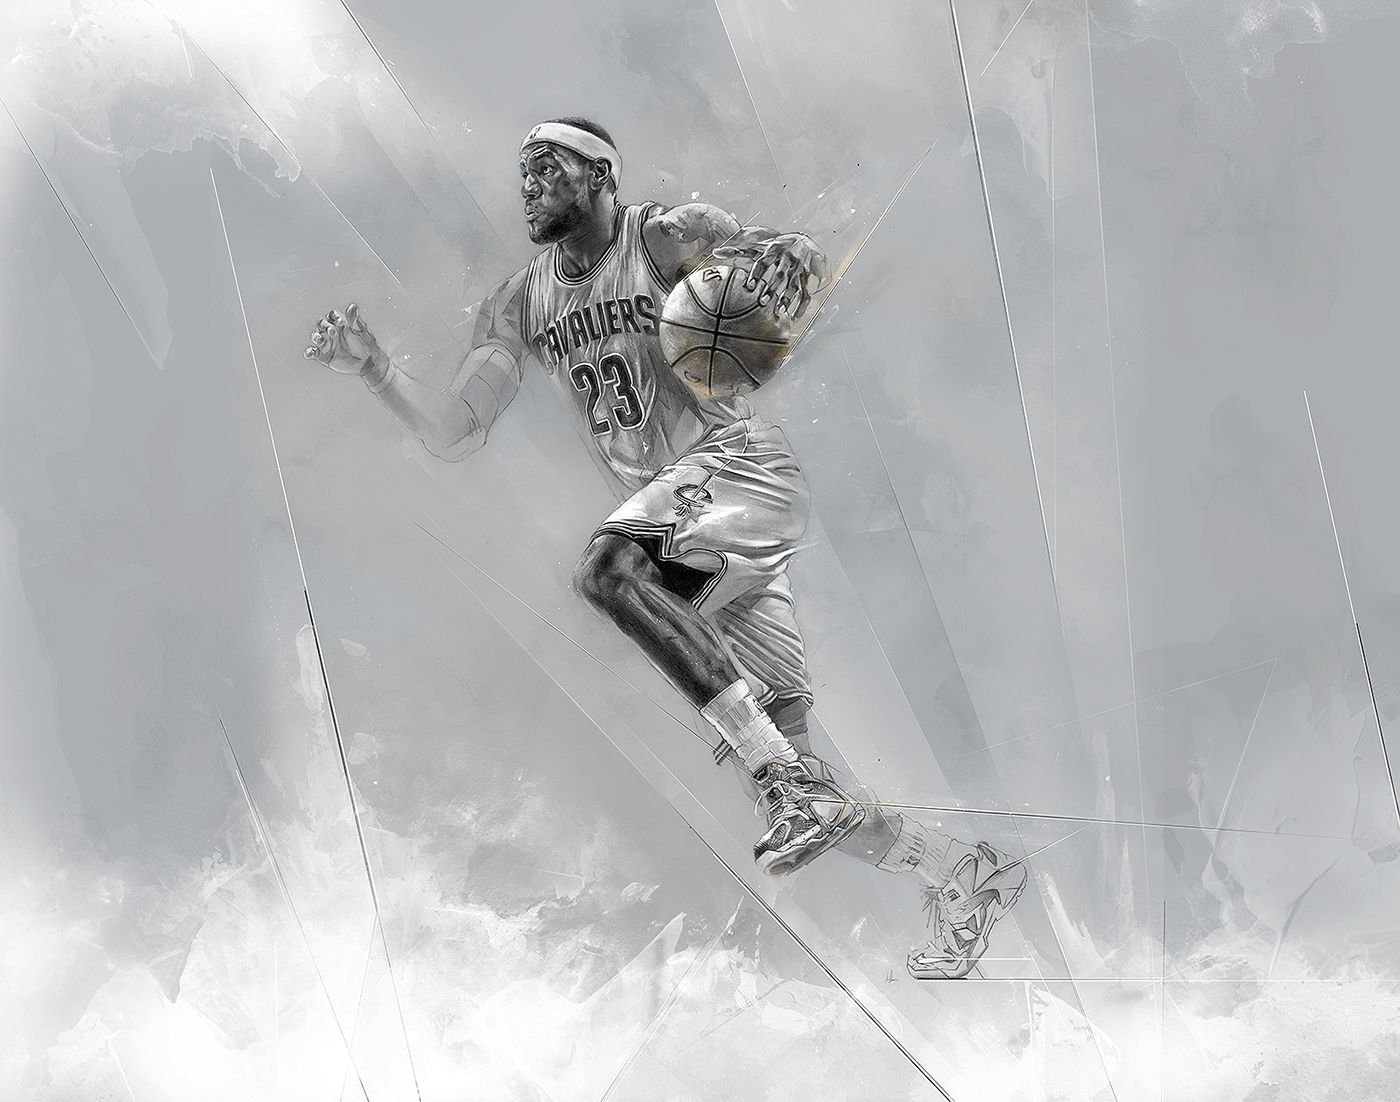 reputable site 45e49 db63f HOUSE OF HOOPS 15 on Behance | Sports | Basketball art ...